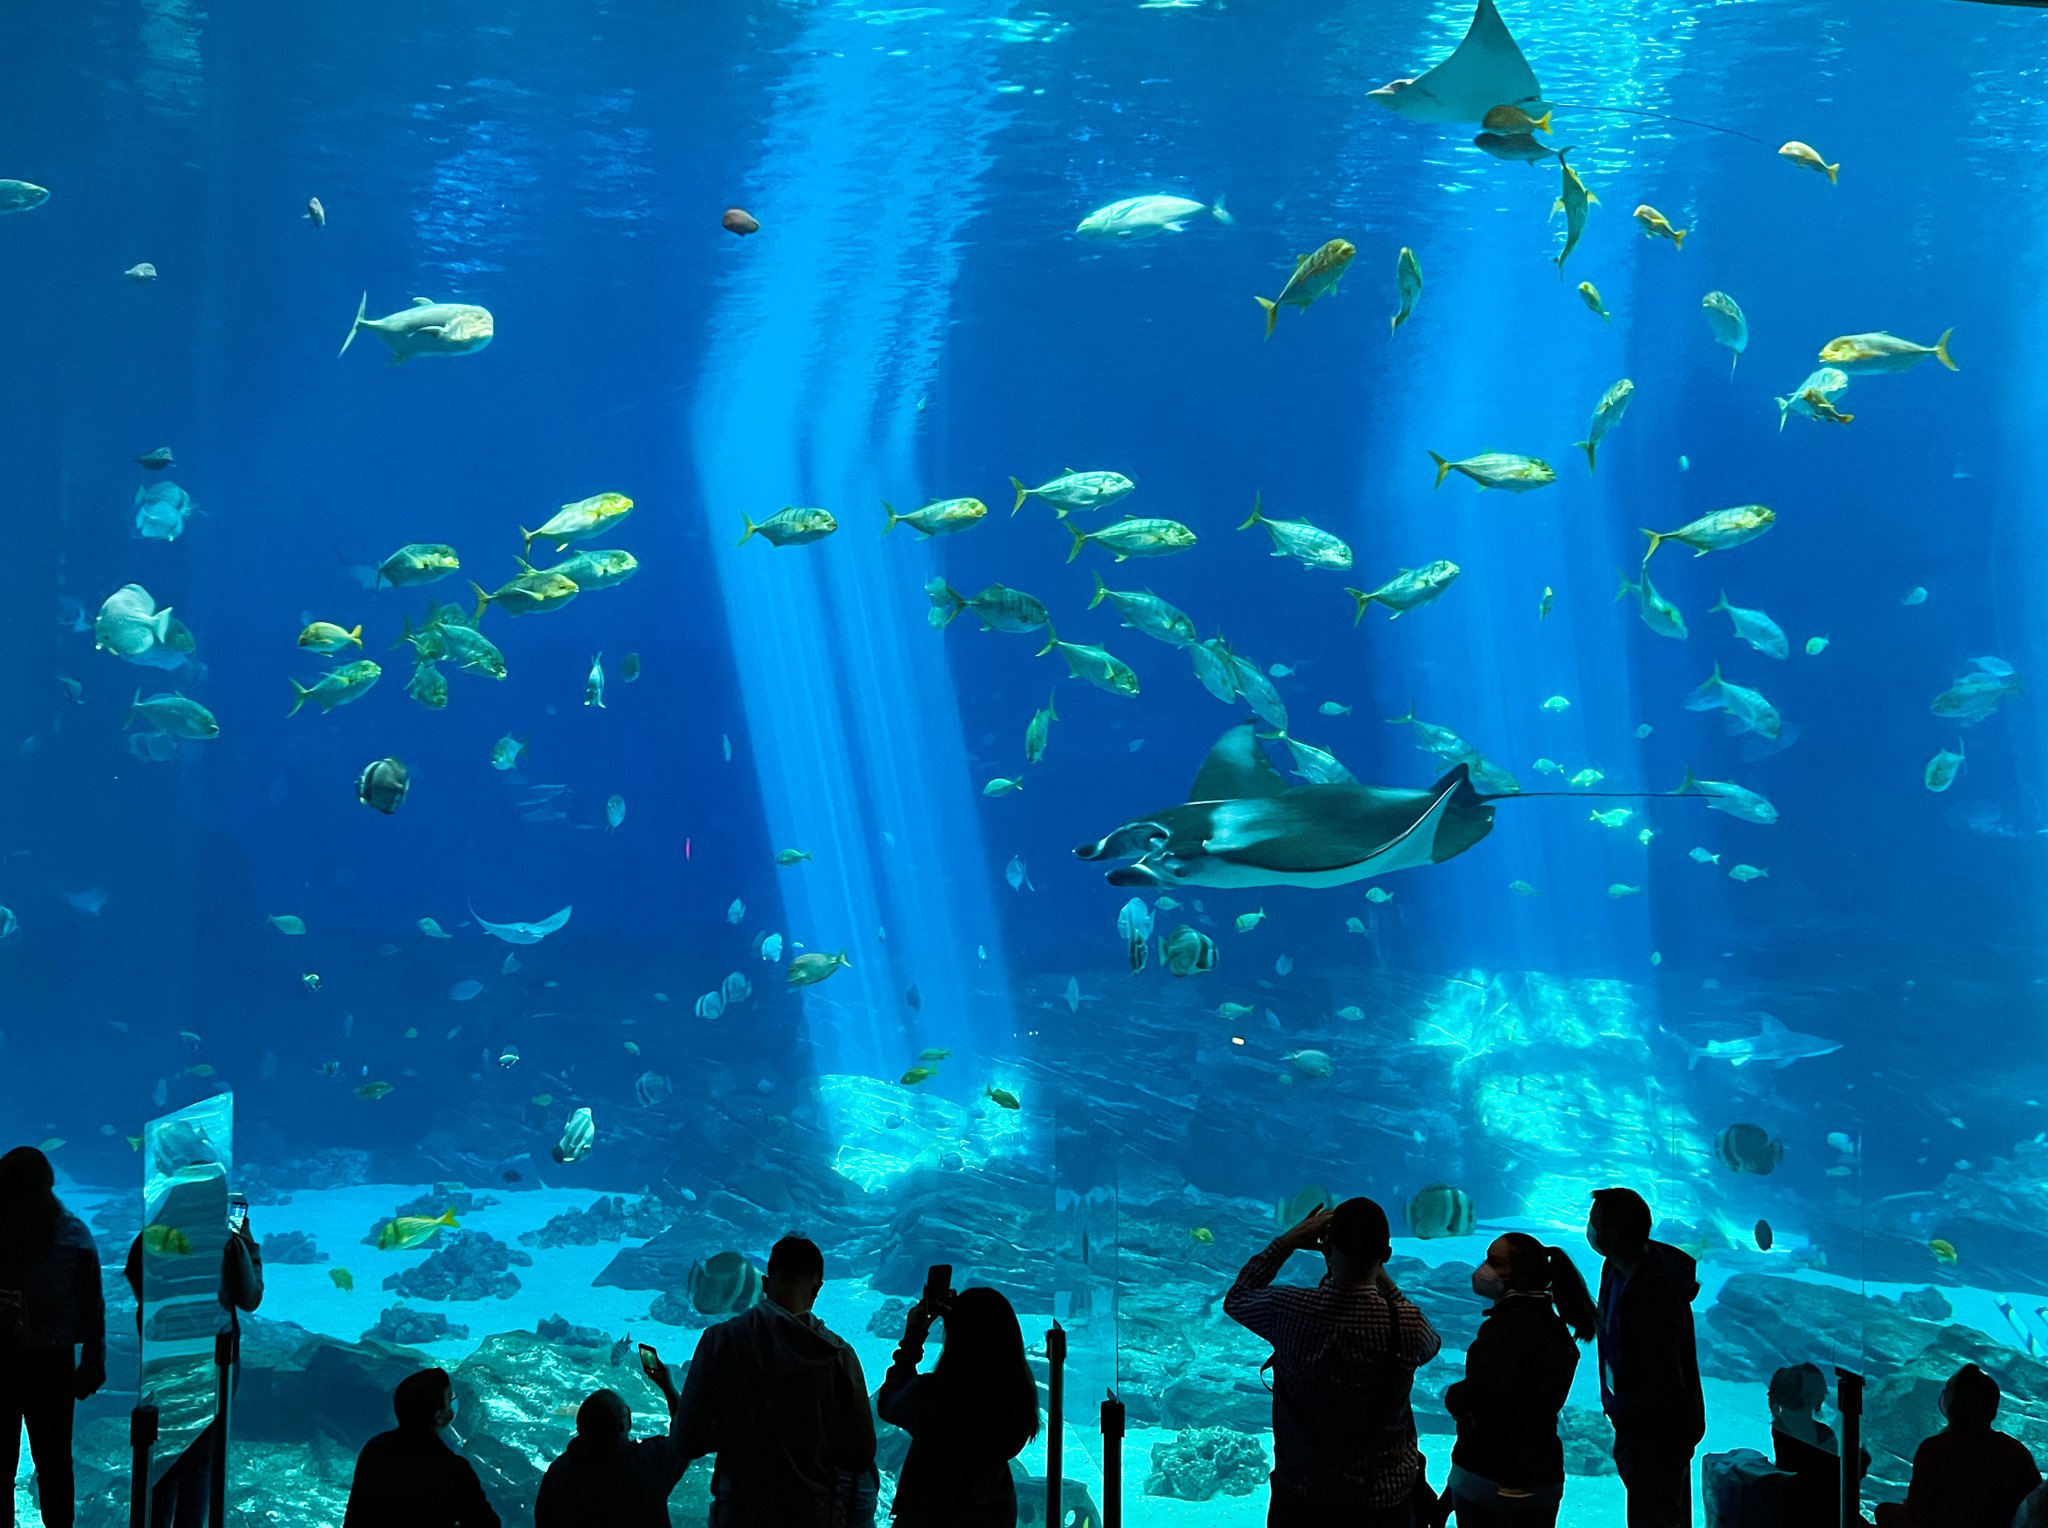 Guests take photos of rays and fish in a big tank at Georgia Aquarum.